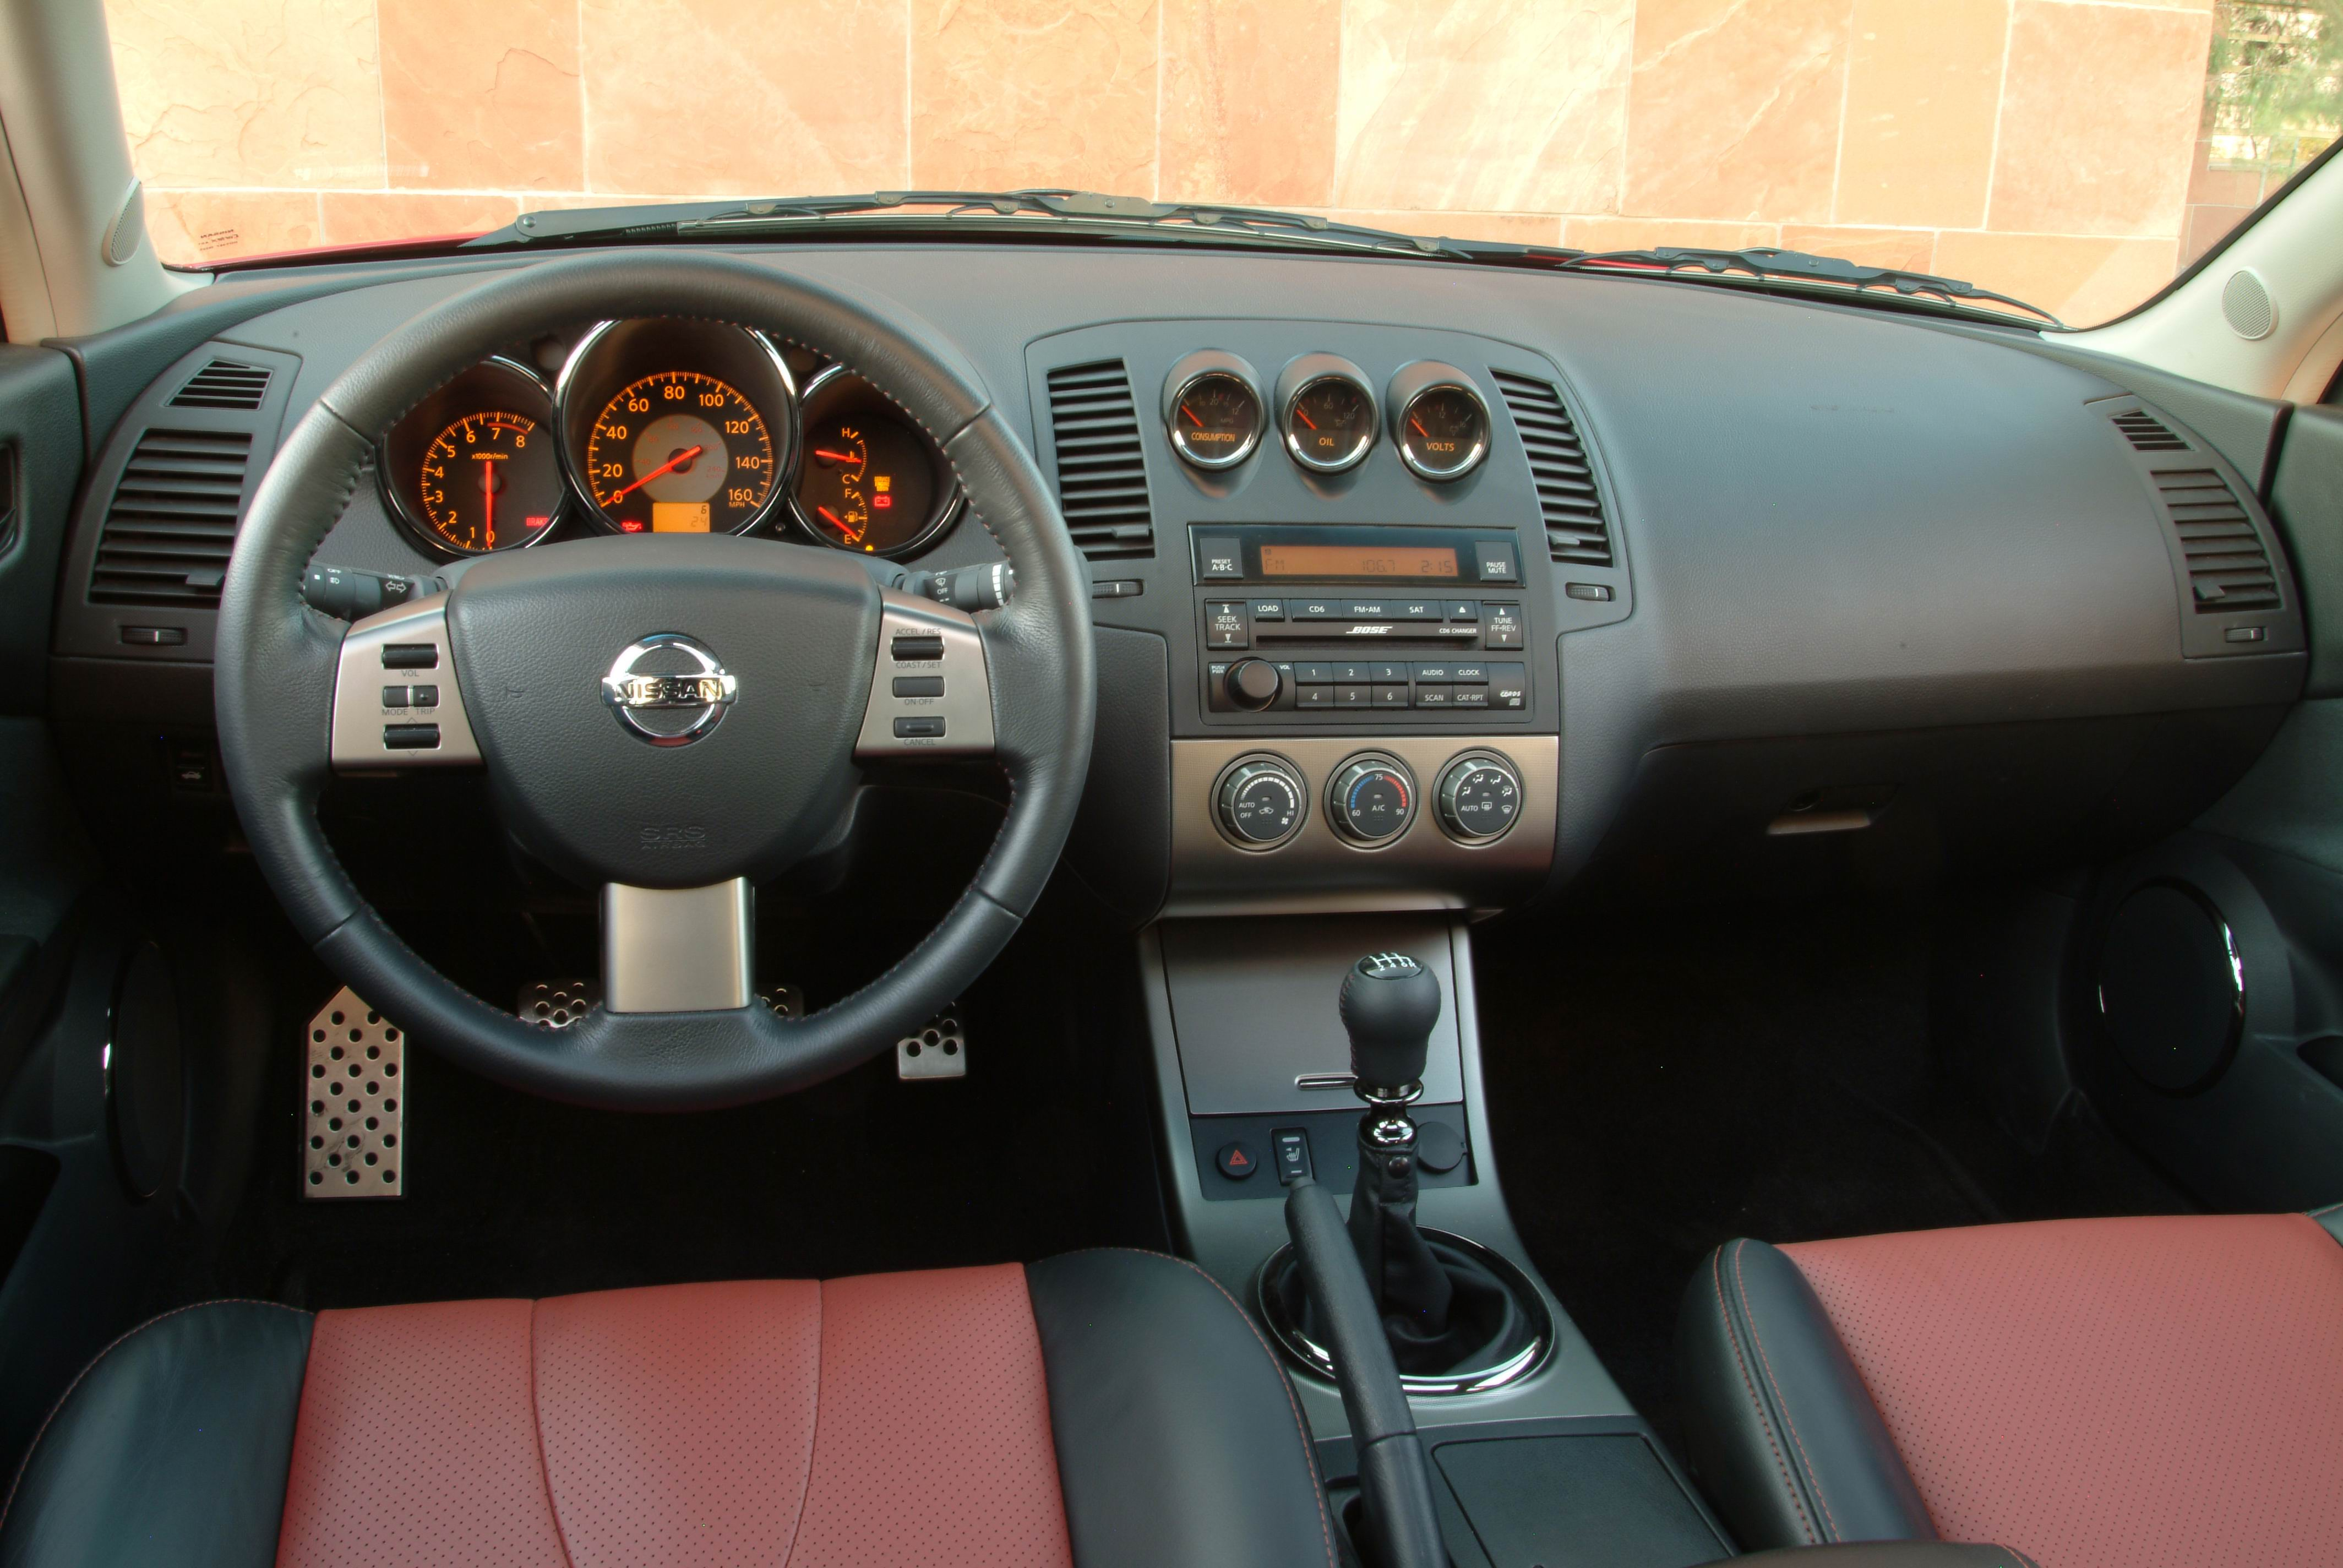 Exceptional 2006 Nissan Altima SE R | Top Speed. »